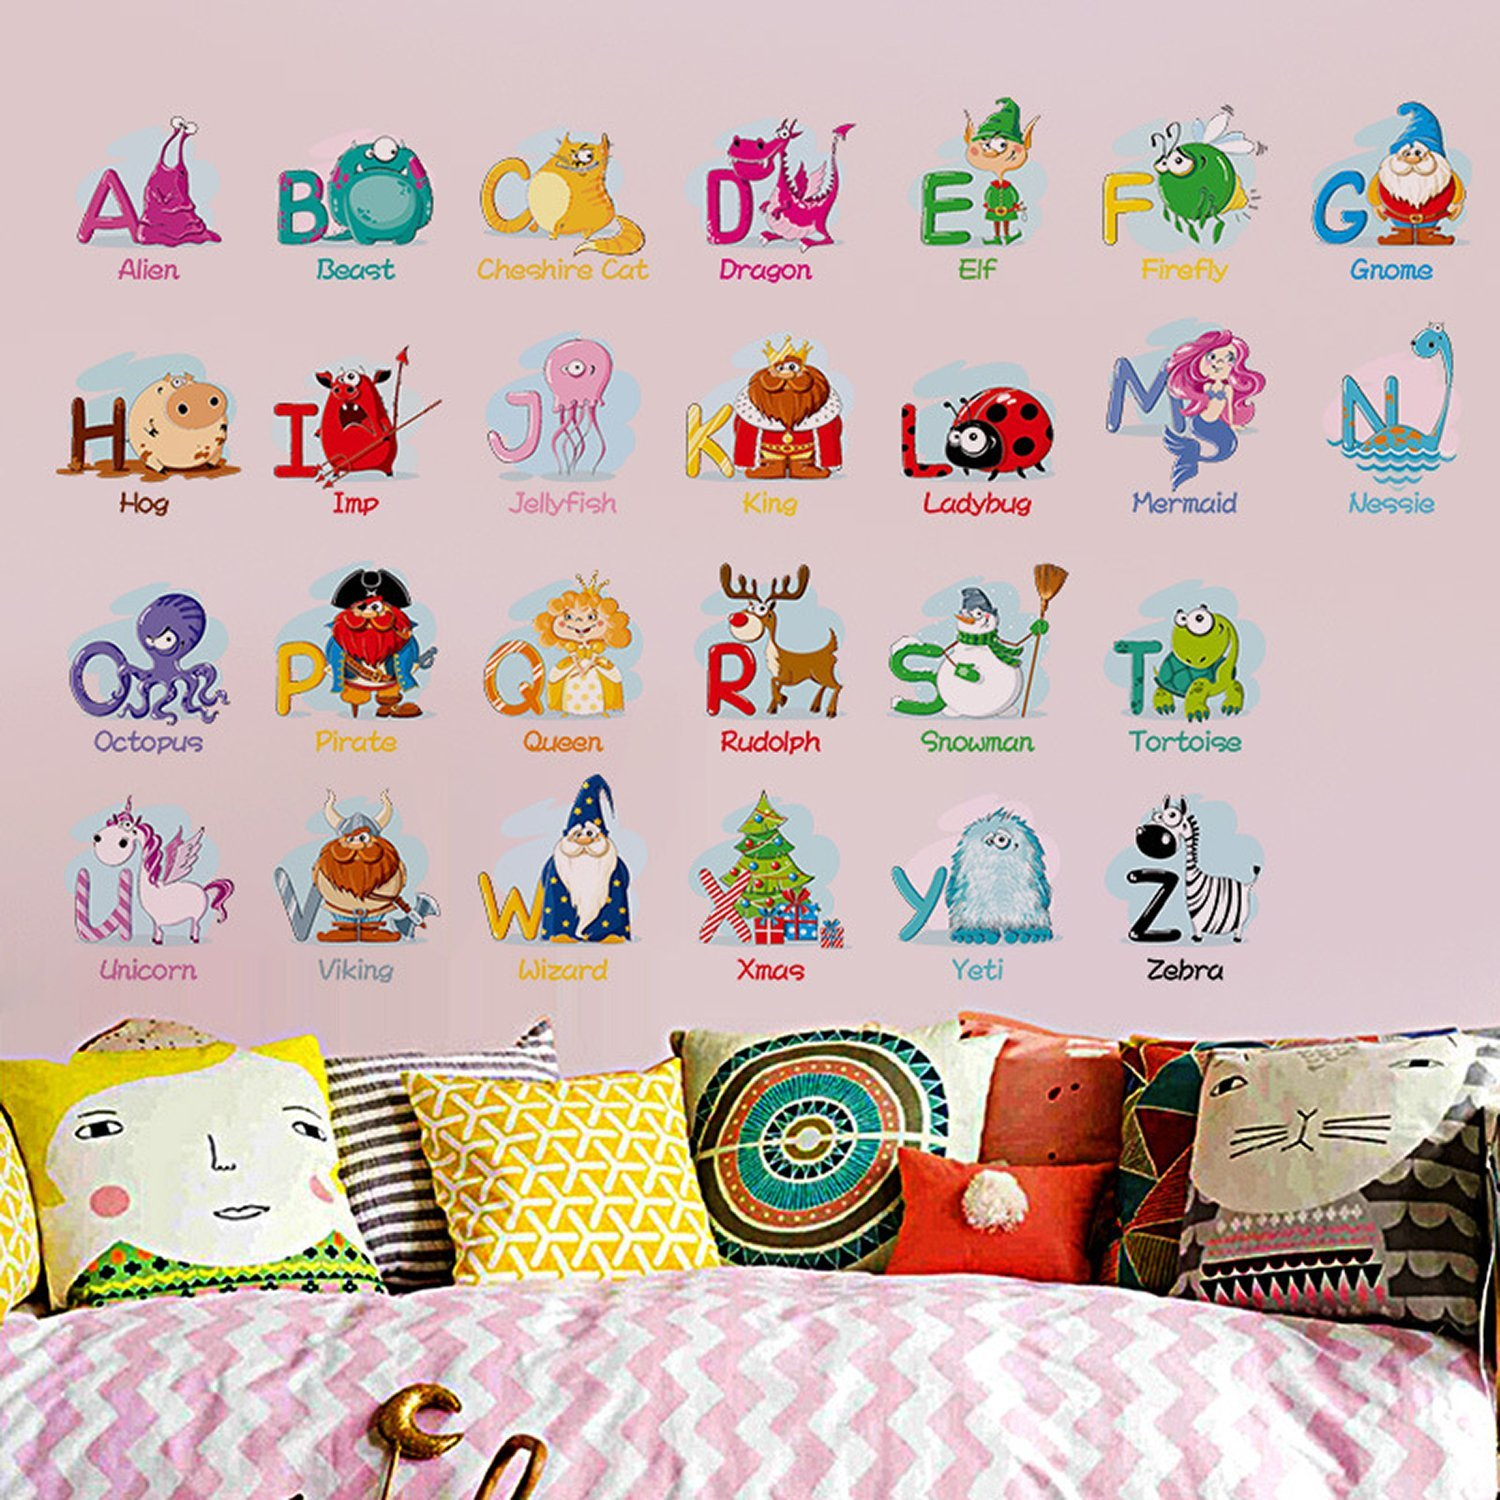 Elie ELVO Colorful Cartoon Alphabet ABC Kids Wall Decals,Removable Fun Educational Wall Stickers Watercolour Wall Decals for Kids Nursery Bedroom Living Room EE ELIE ELVO